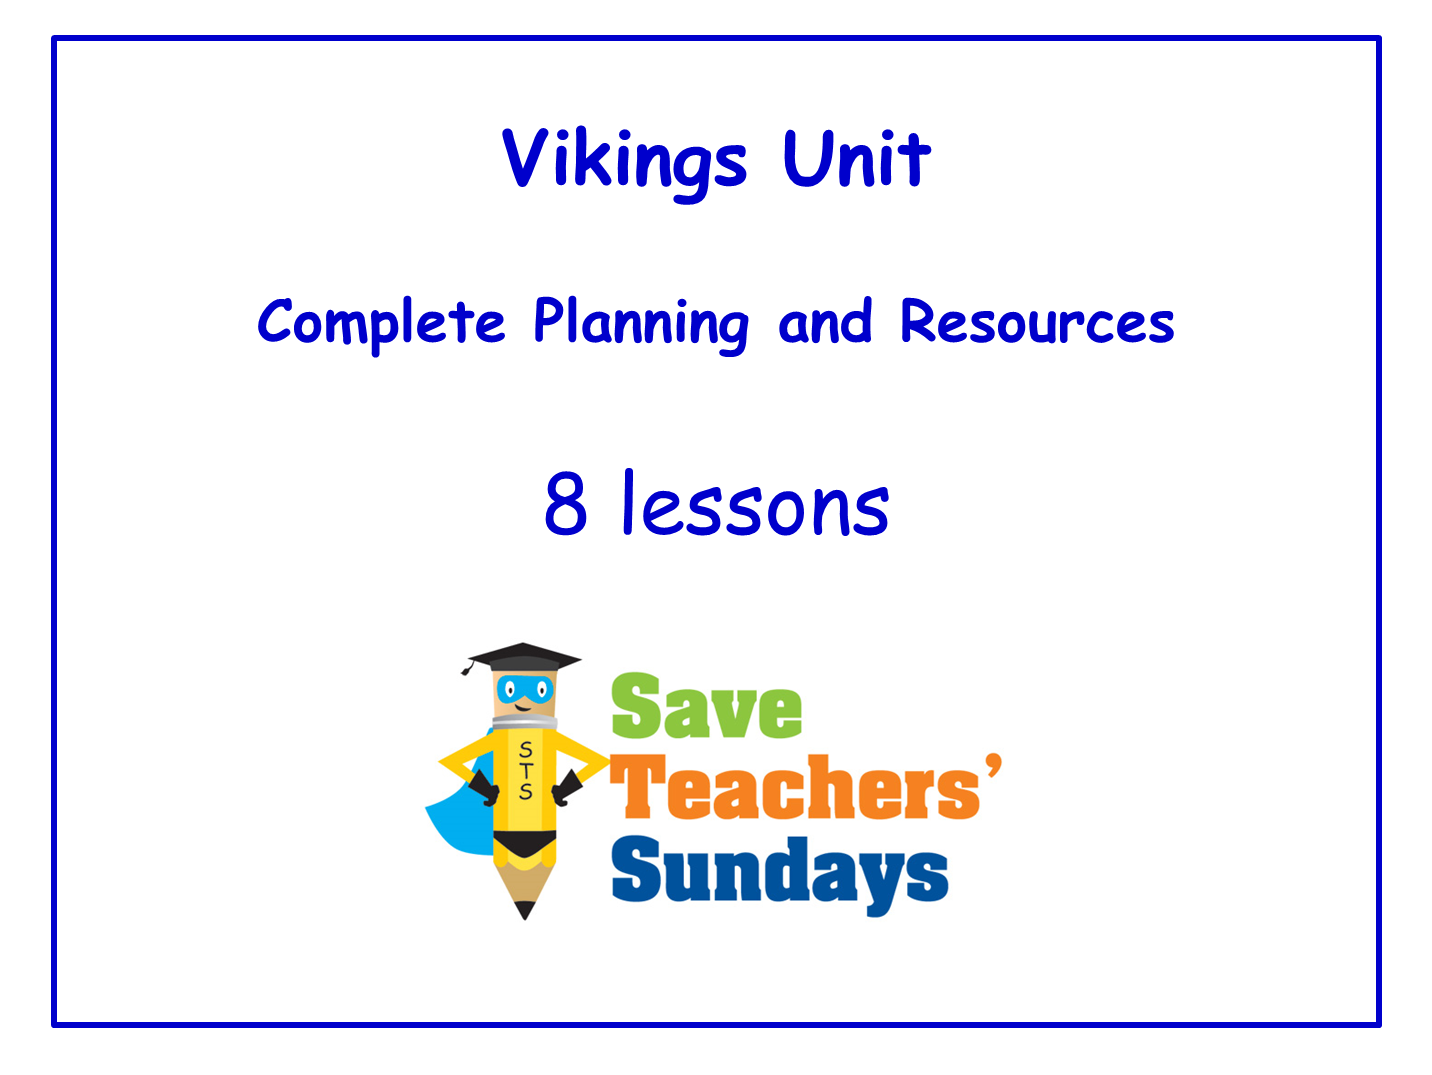 KS2 Vikings Lesson Plans and Resources